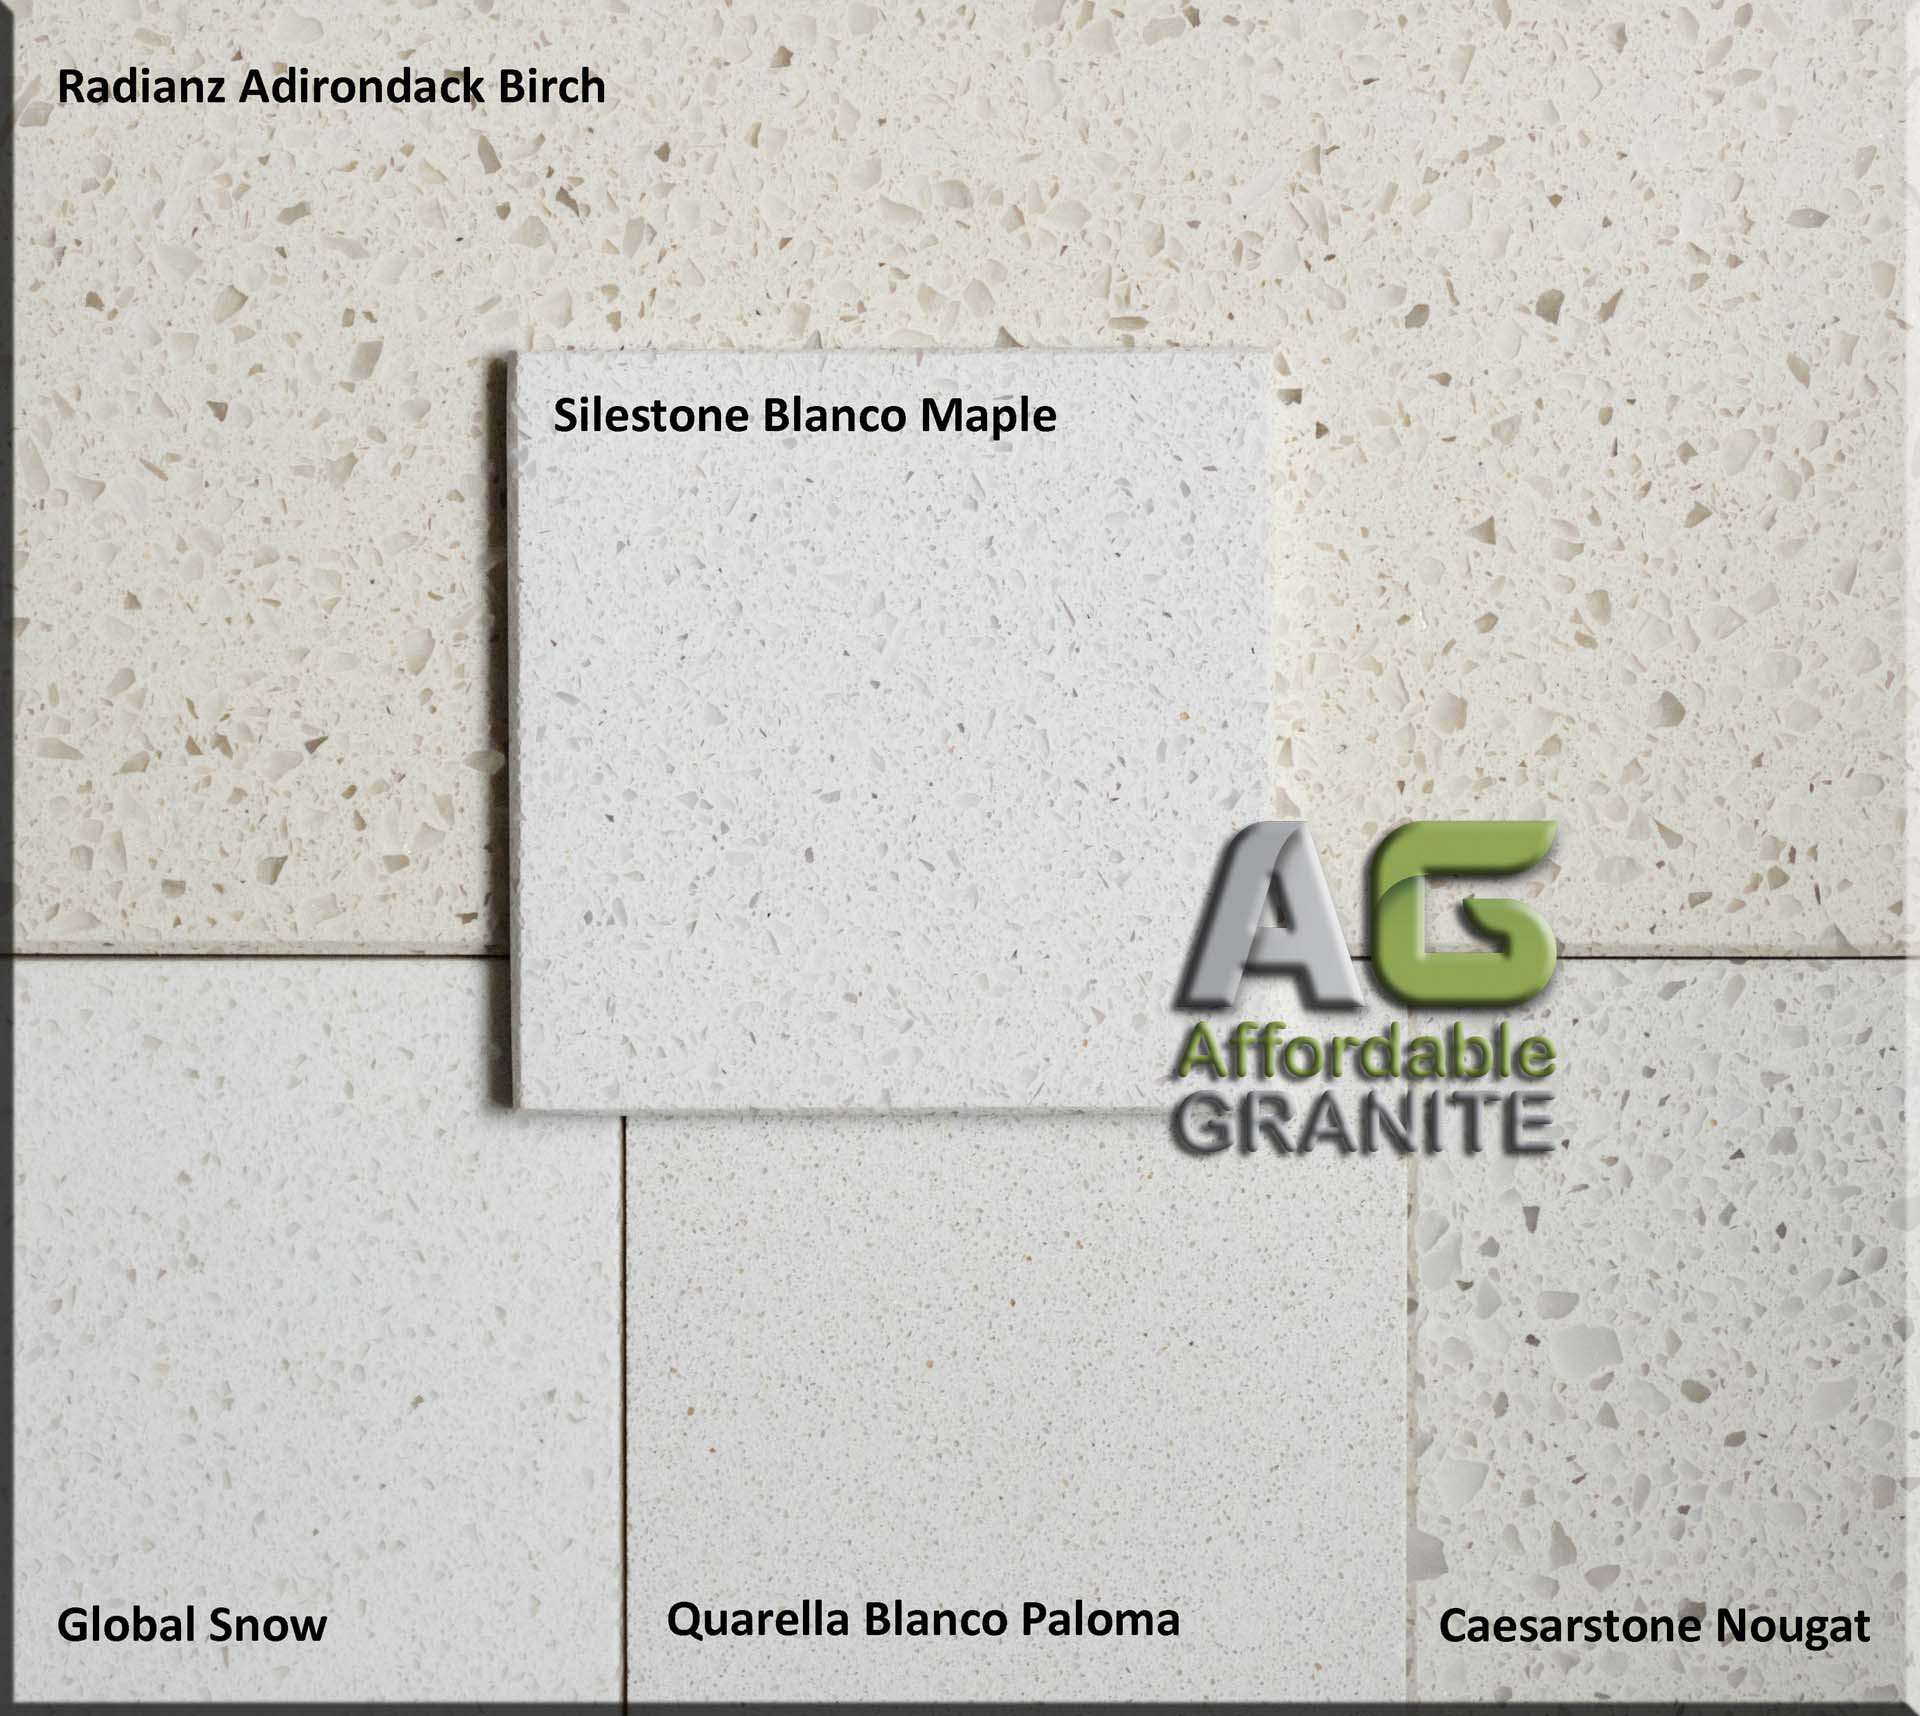 Radianz Adirondack, Silestone Blanco Maple, Global Snow, Caesarstone Nougat, Quarella Blanco Paloma